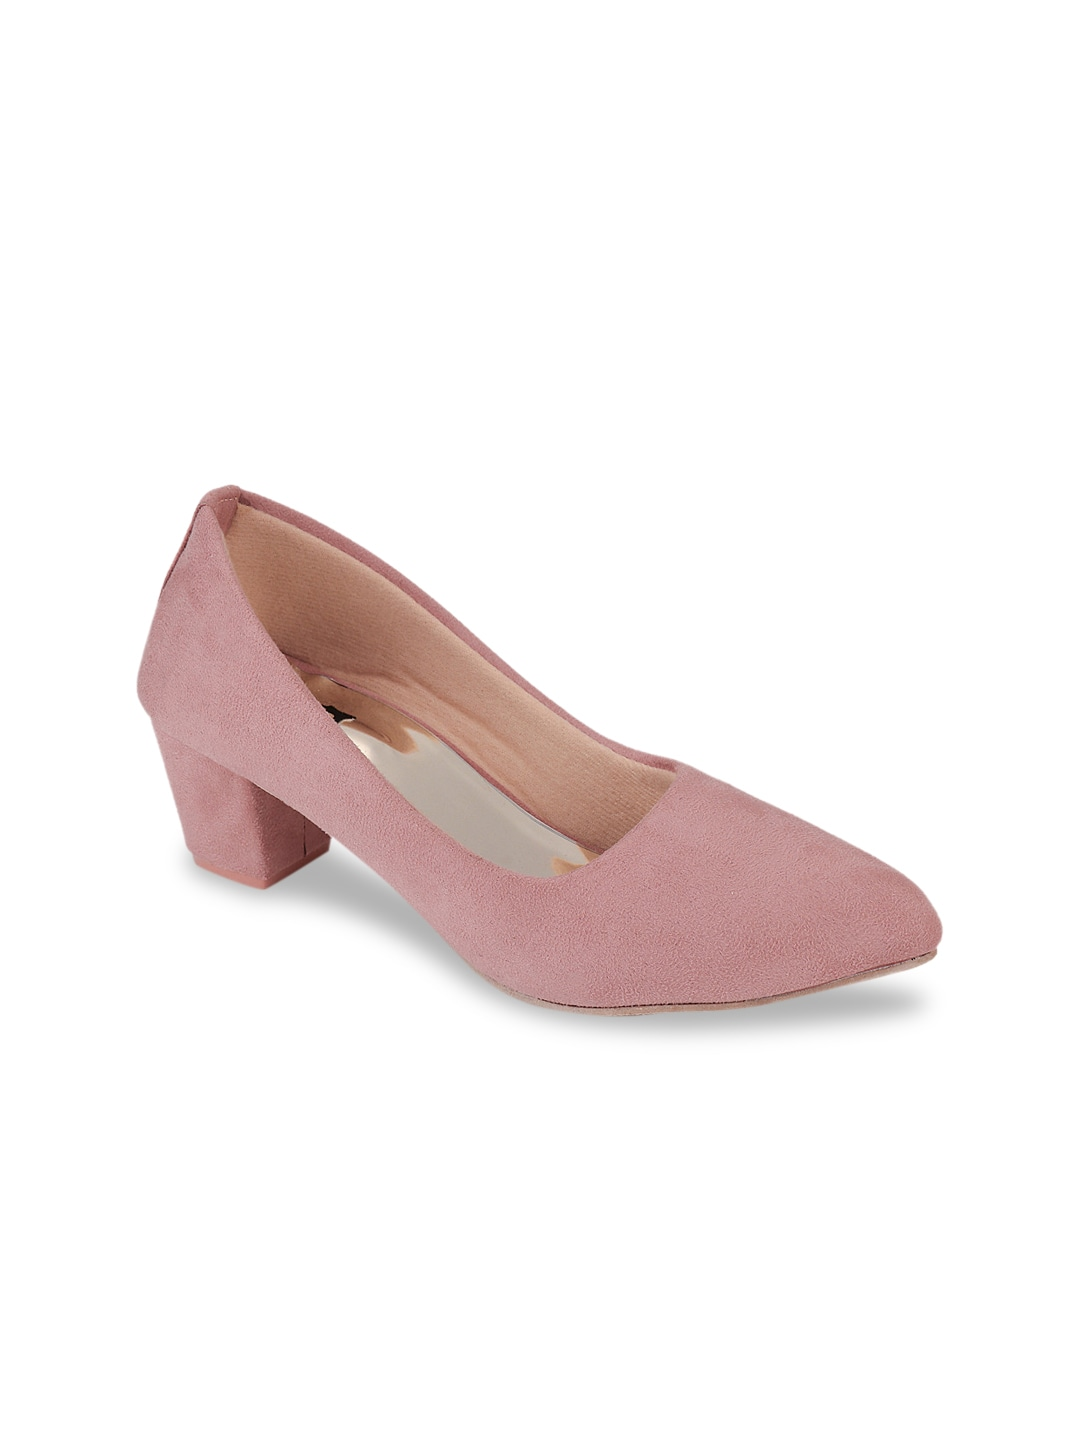 Pink Suede Solid Pumps